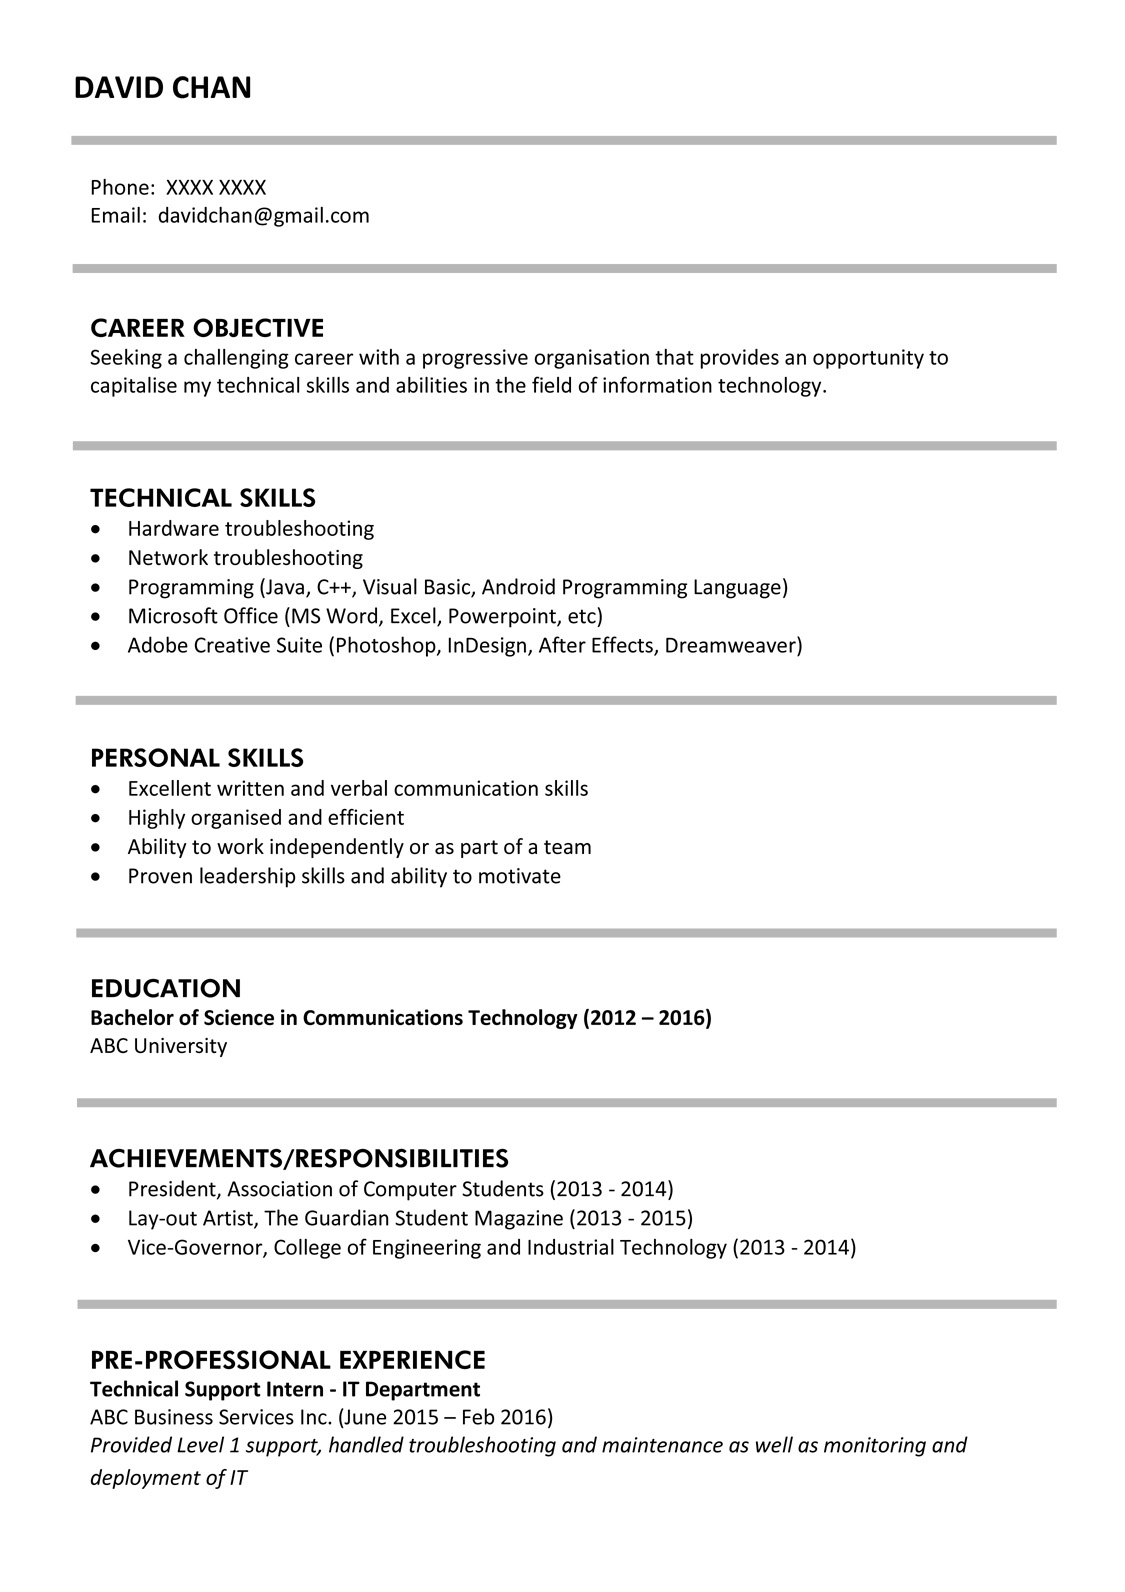 sample resume for fresh graduates it professional - Professional It Resume Samples